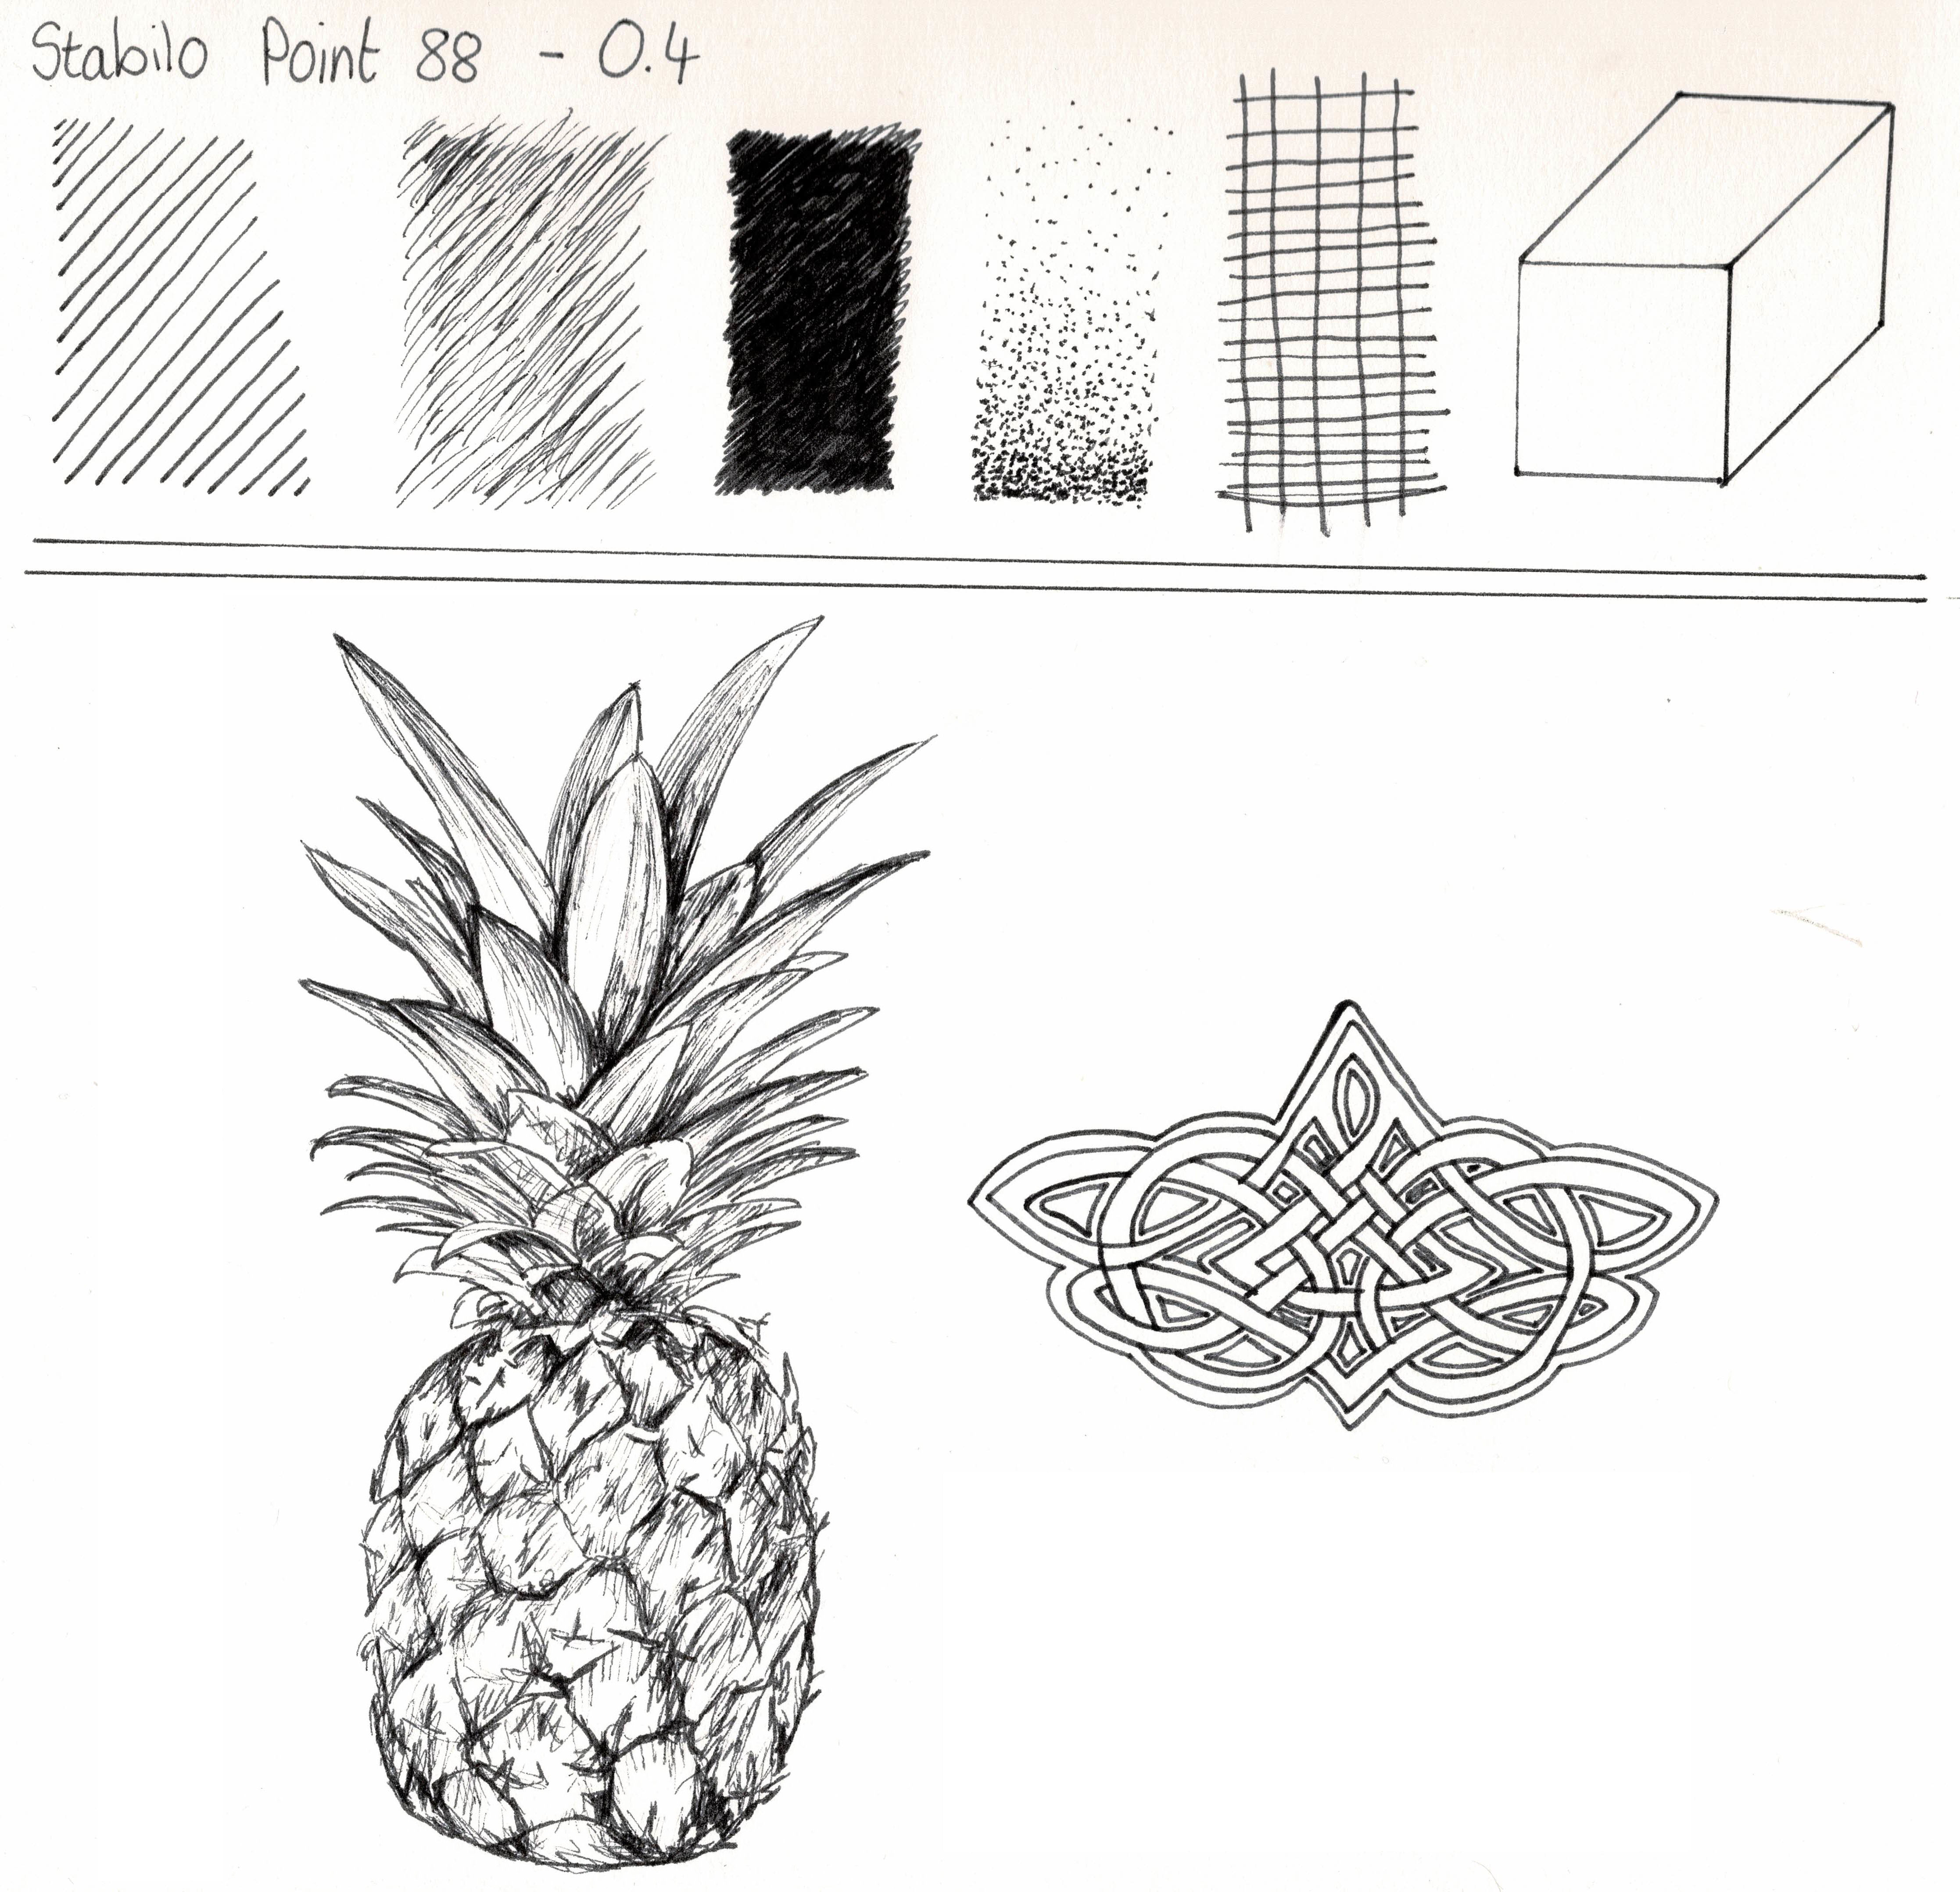 Drawing With Stabilo Point 88 Fineliners